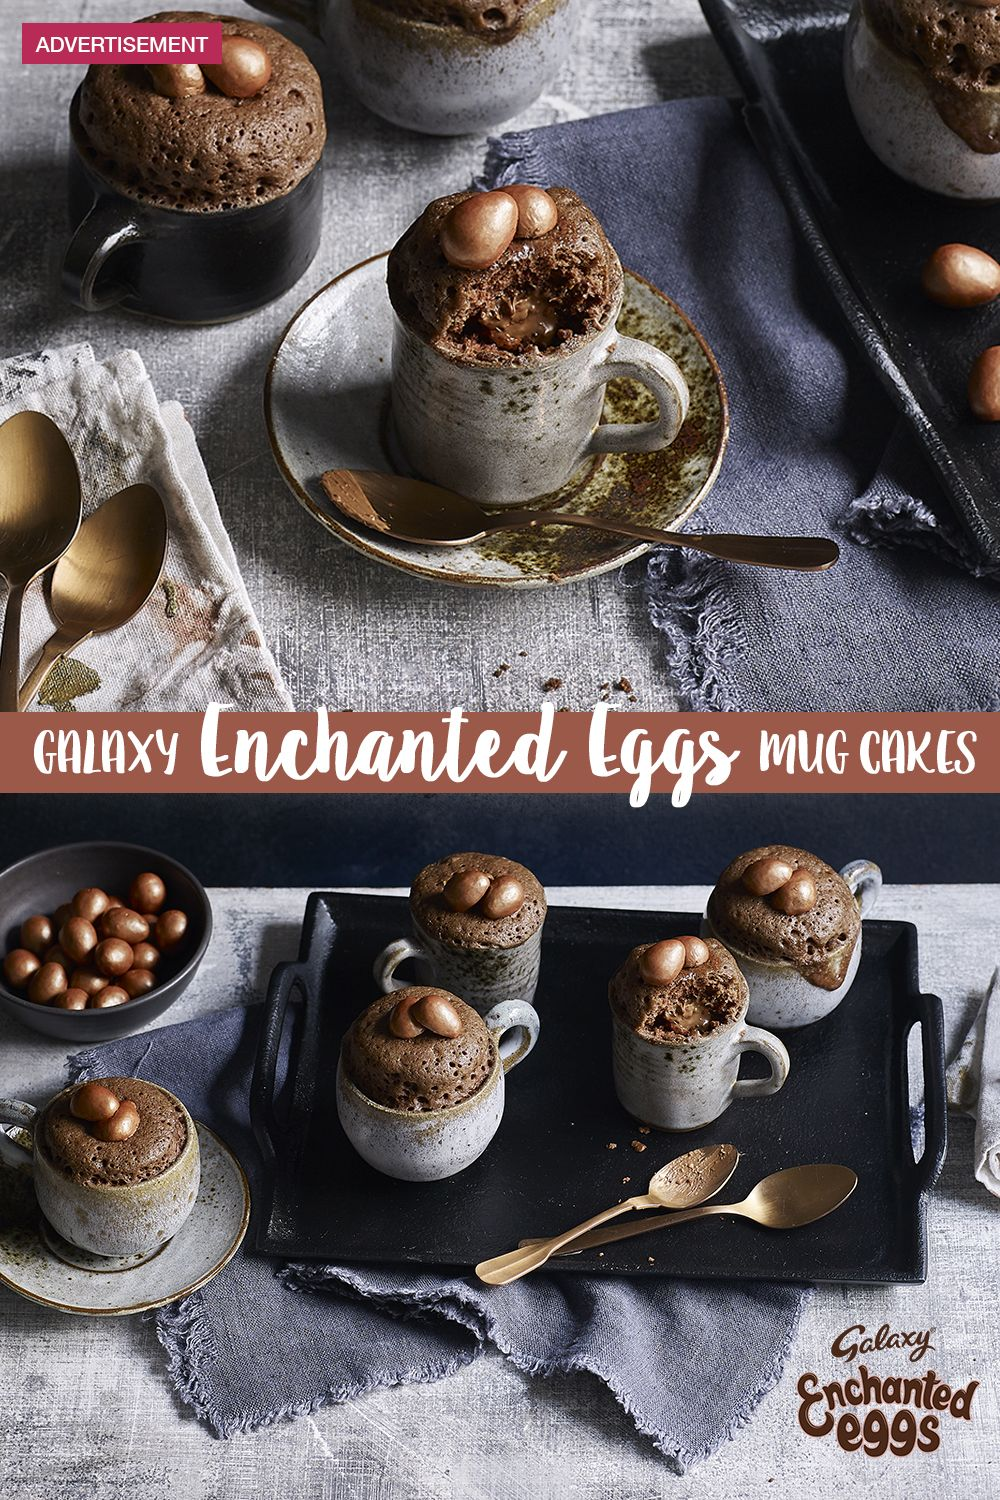 Galaxy Enchanted Eggs chocolate mug cakes | Recipe in 2020 ...